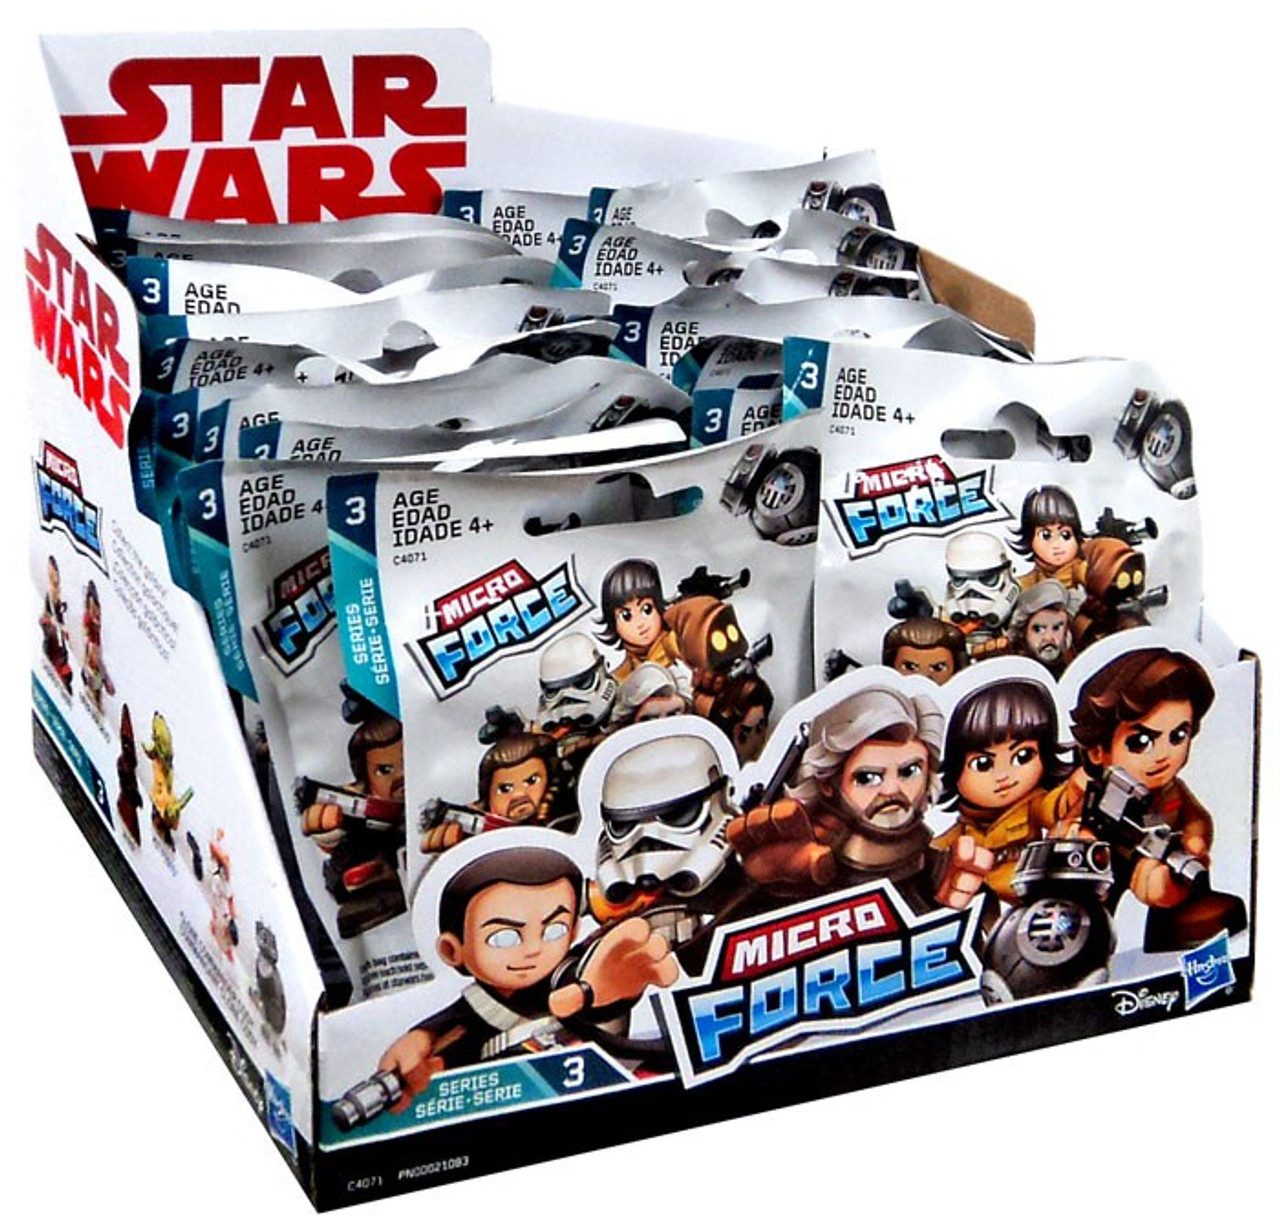 Lot of 5 Star Wars Micro Force Mini Figures Blind Bags-Choose from Series1,2,3,4